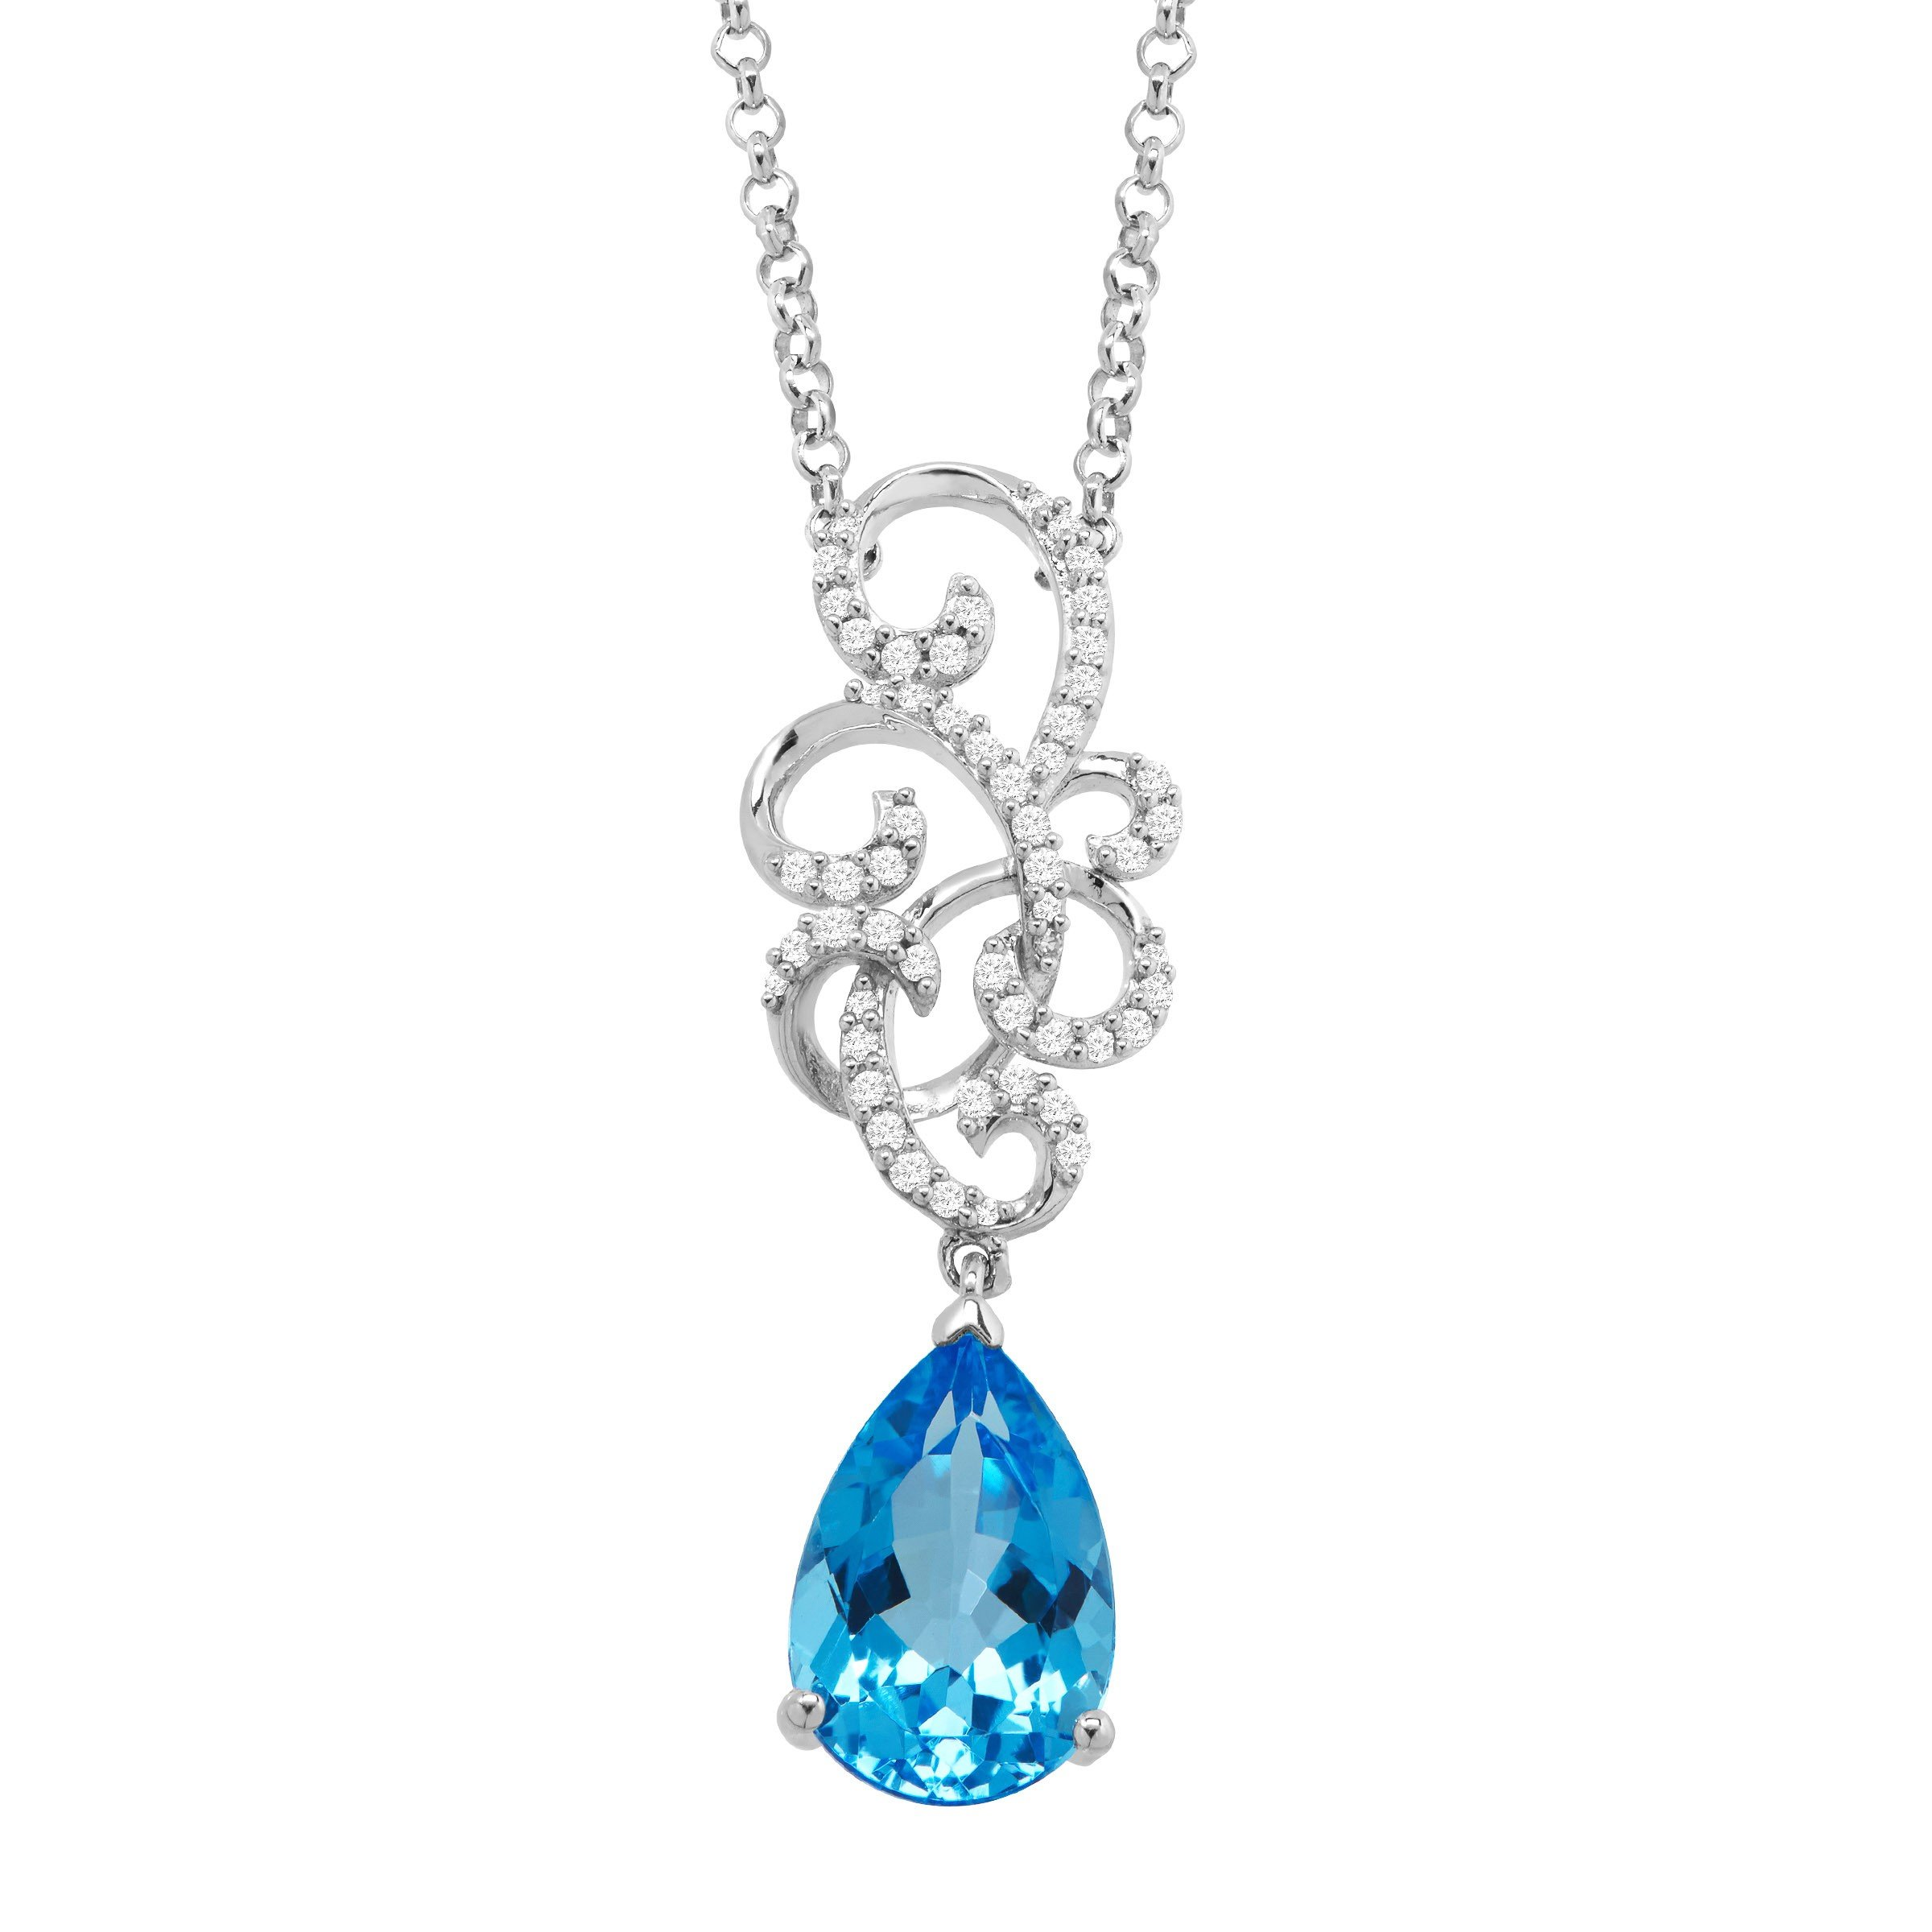 3 1/2 ct Natural Swiss Blue Topaz & 1/5 ct Diamond Swirl Necklace in Sterling Silver